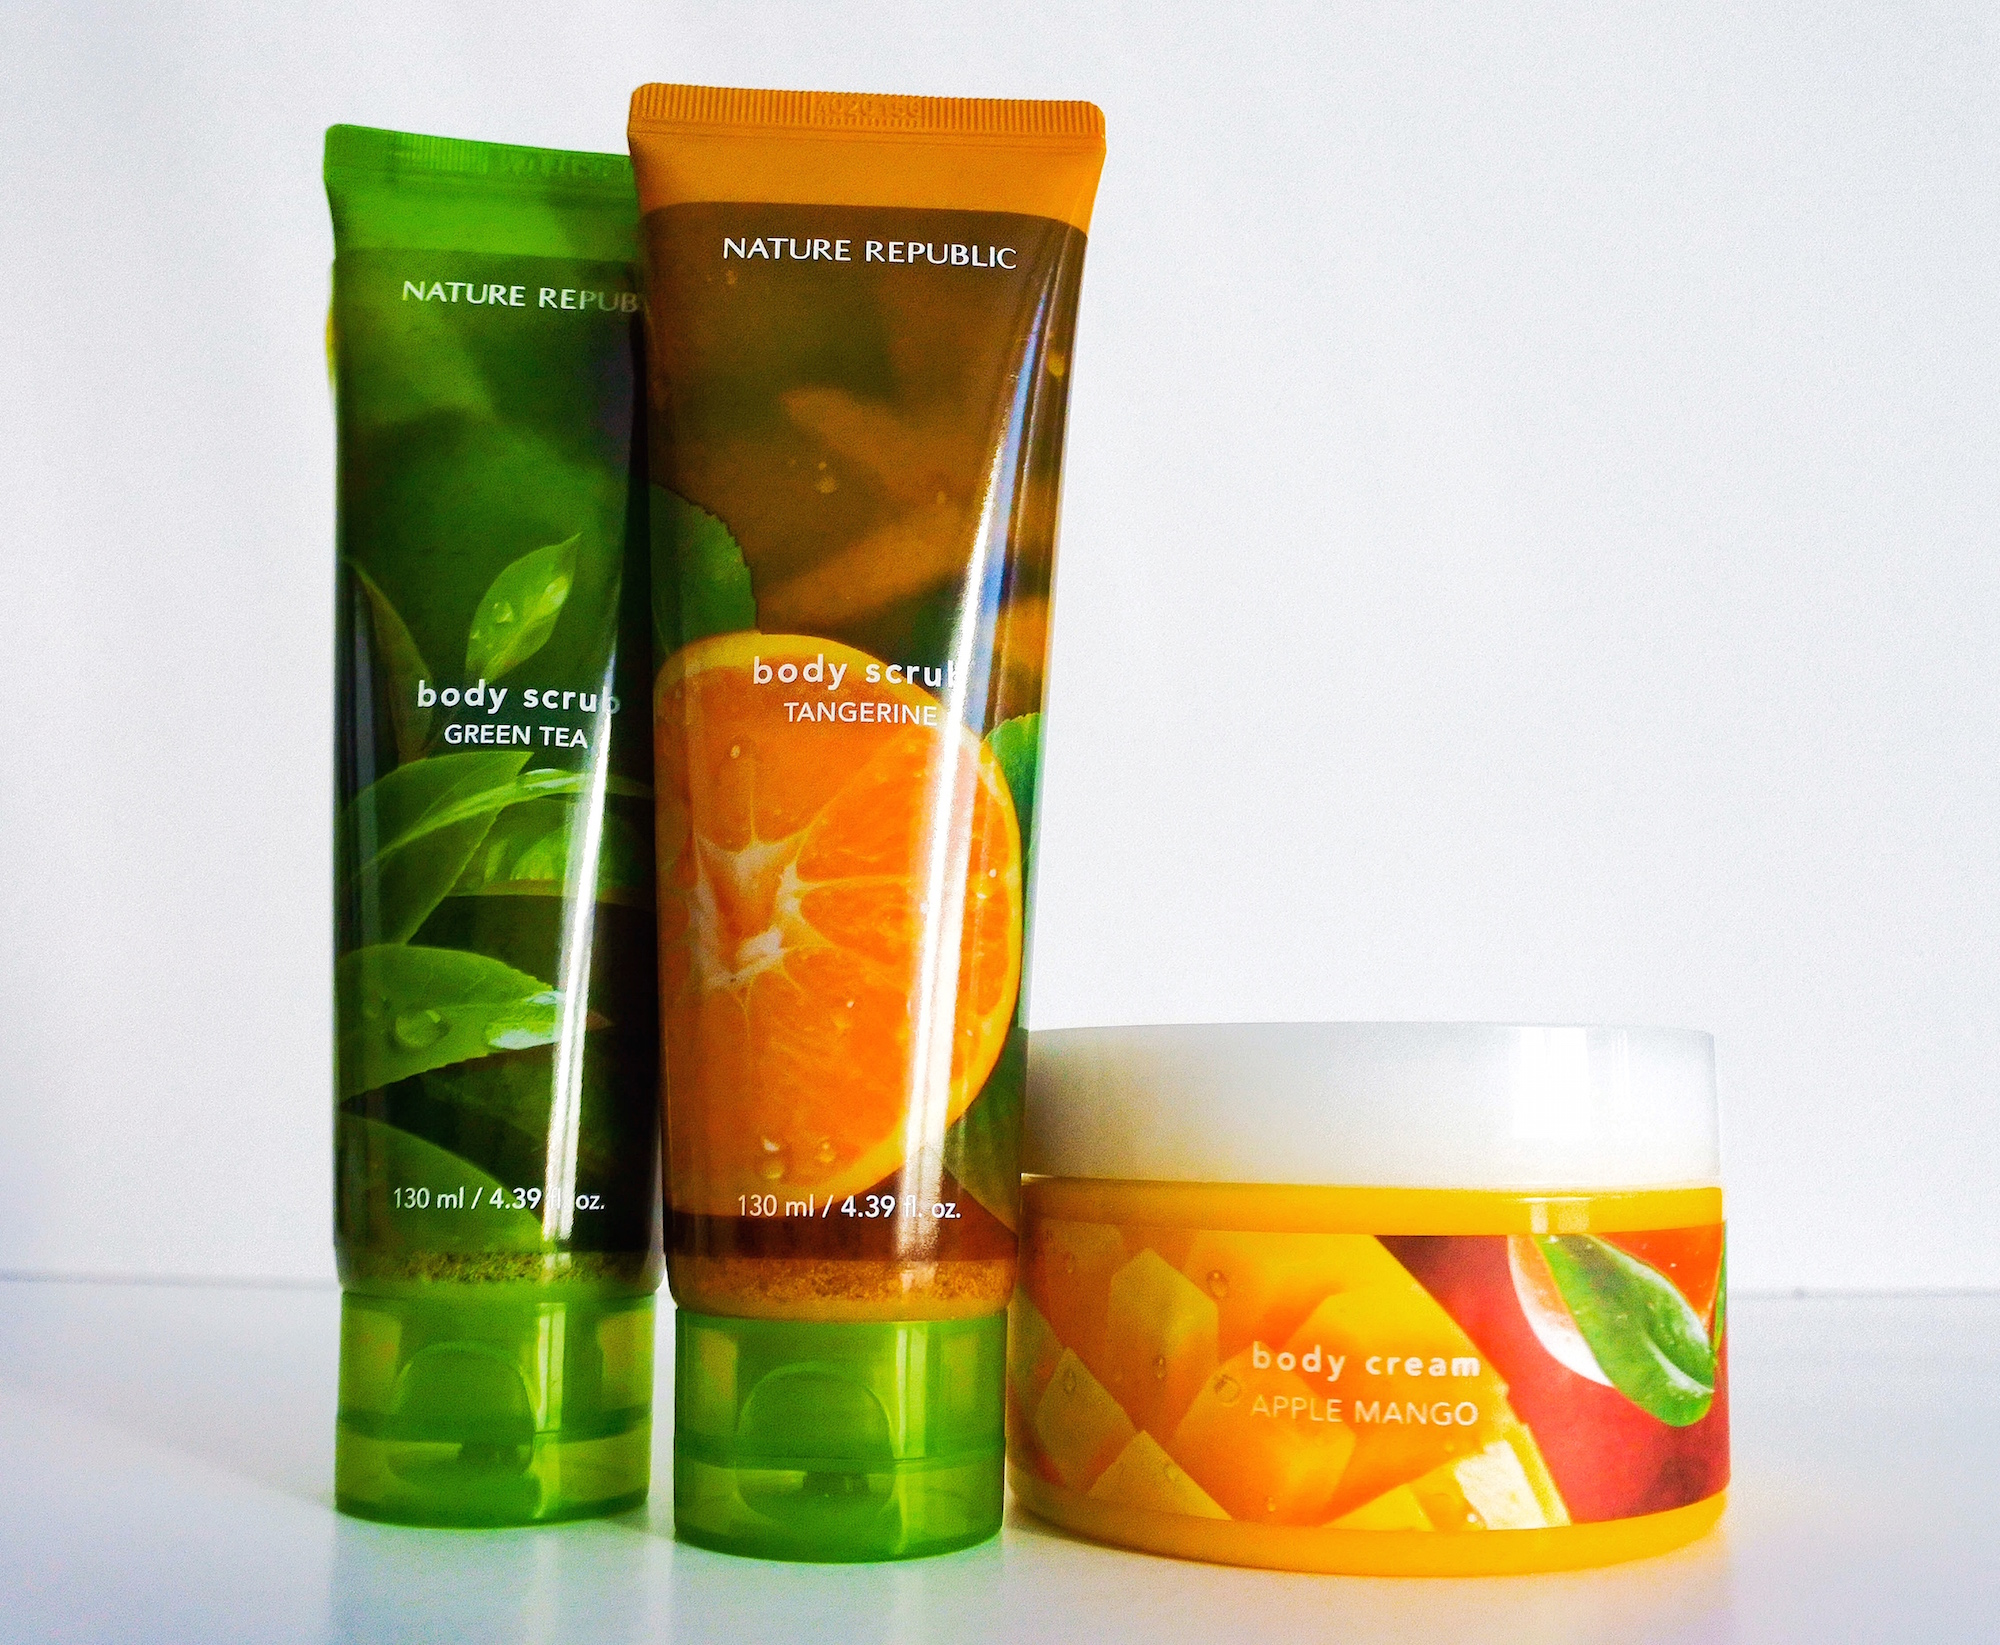 Reviewing Nature Republic Body Care Products:  Body Scrub, Body Cream